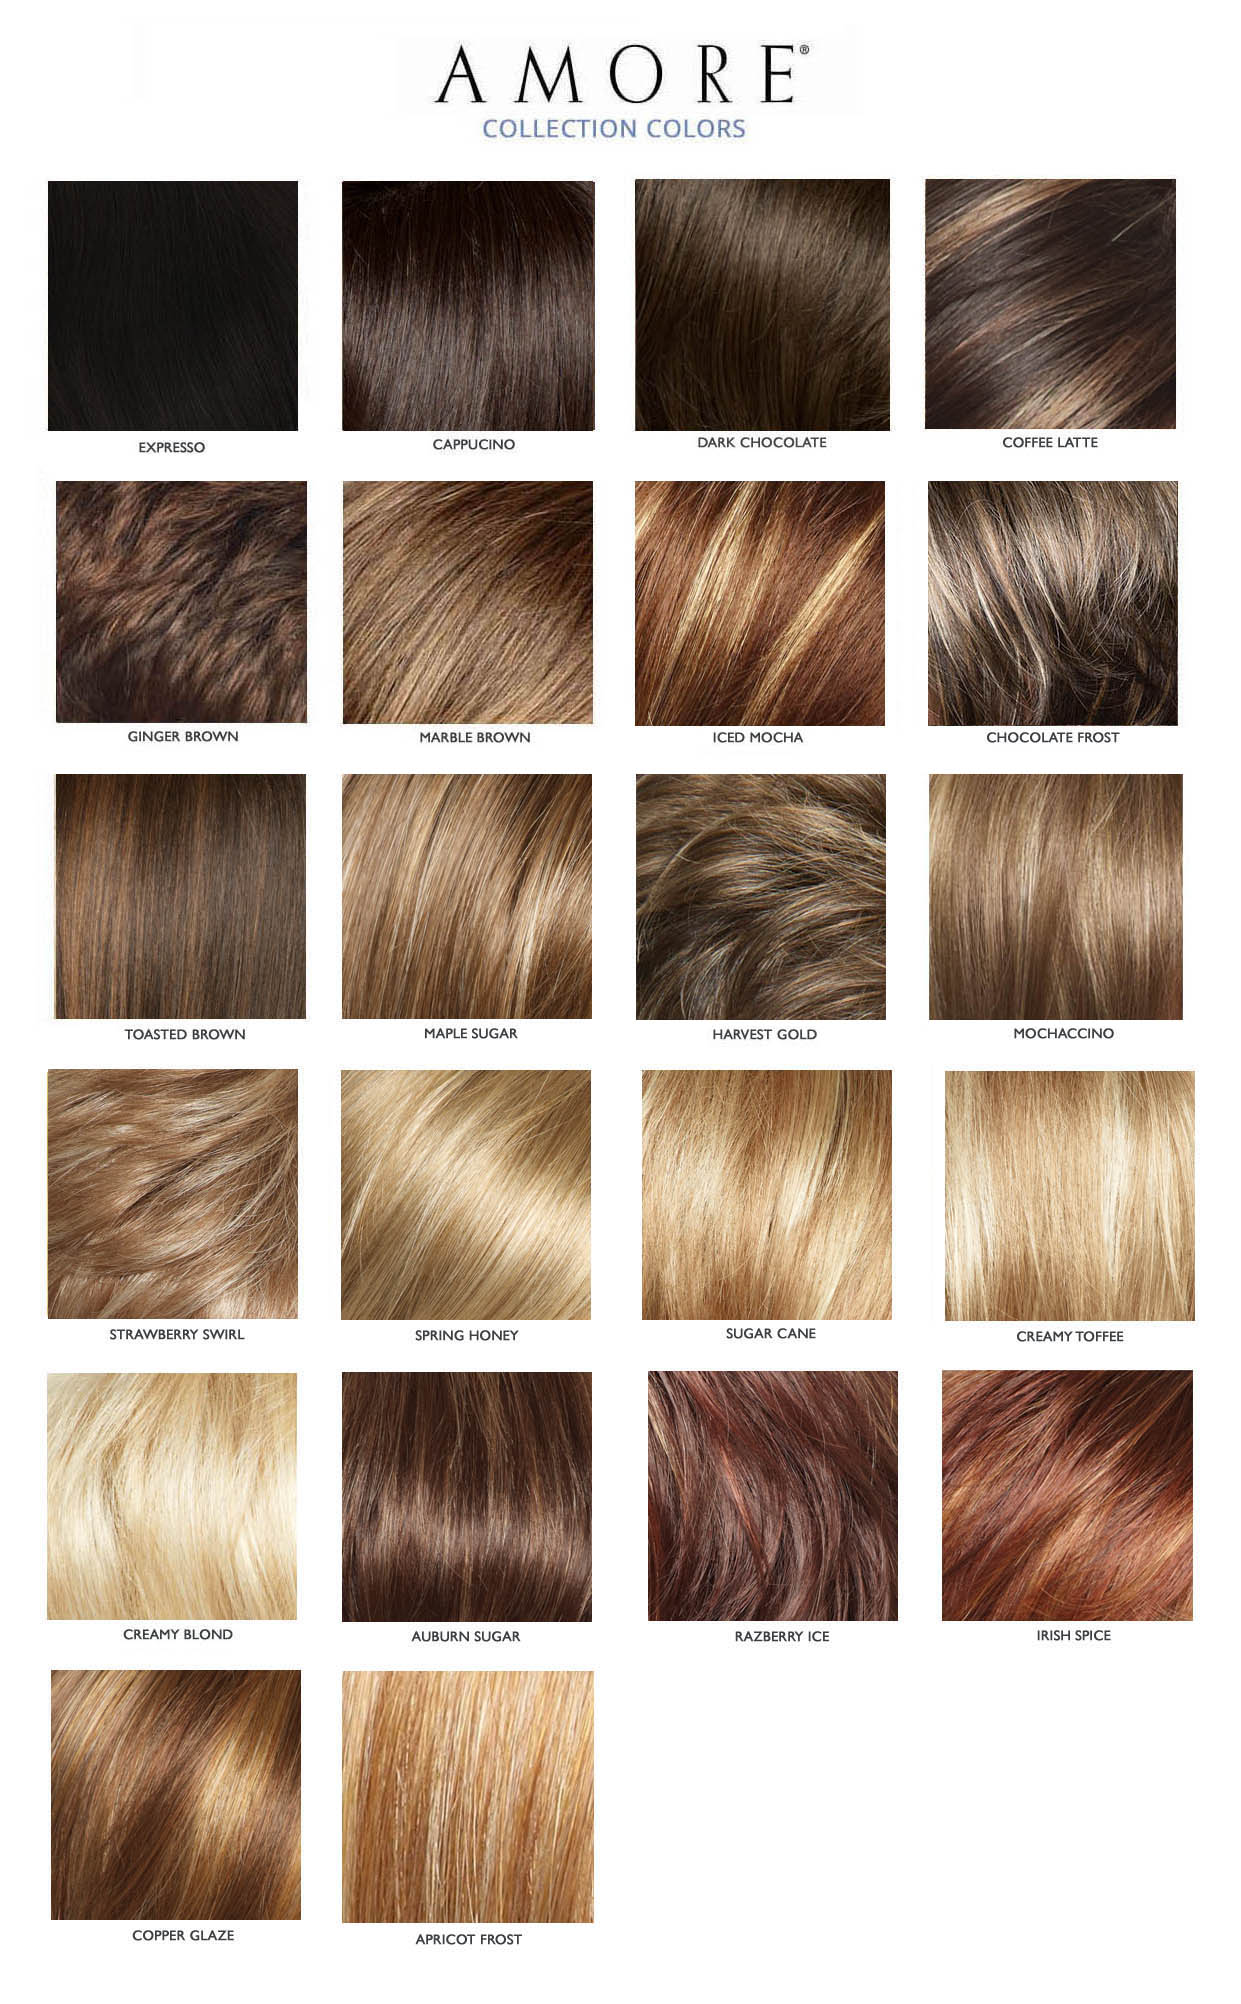 AMORE TATUM HAIR COLORS